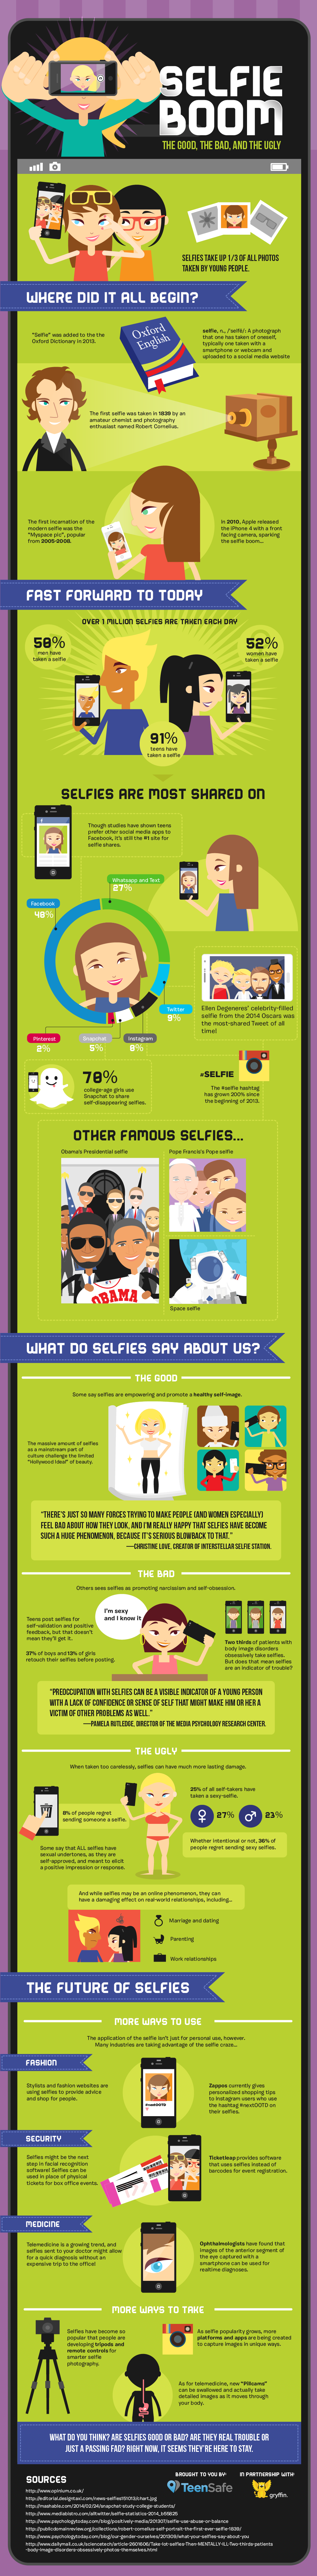 TeenSafe-Selfies